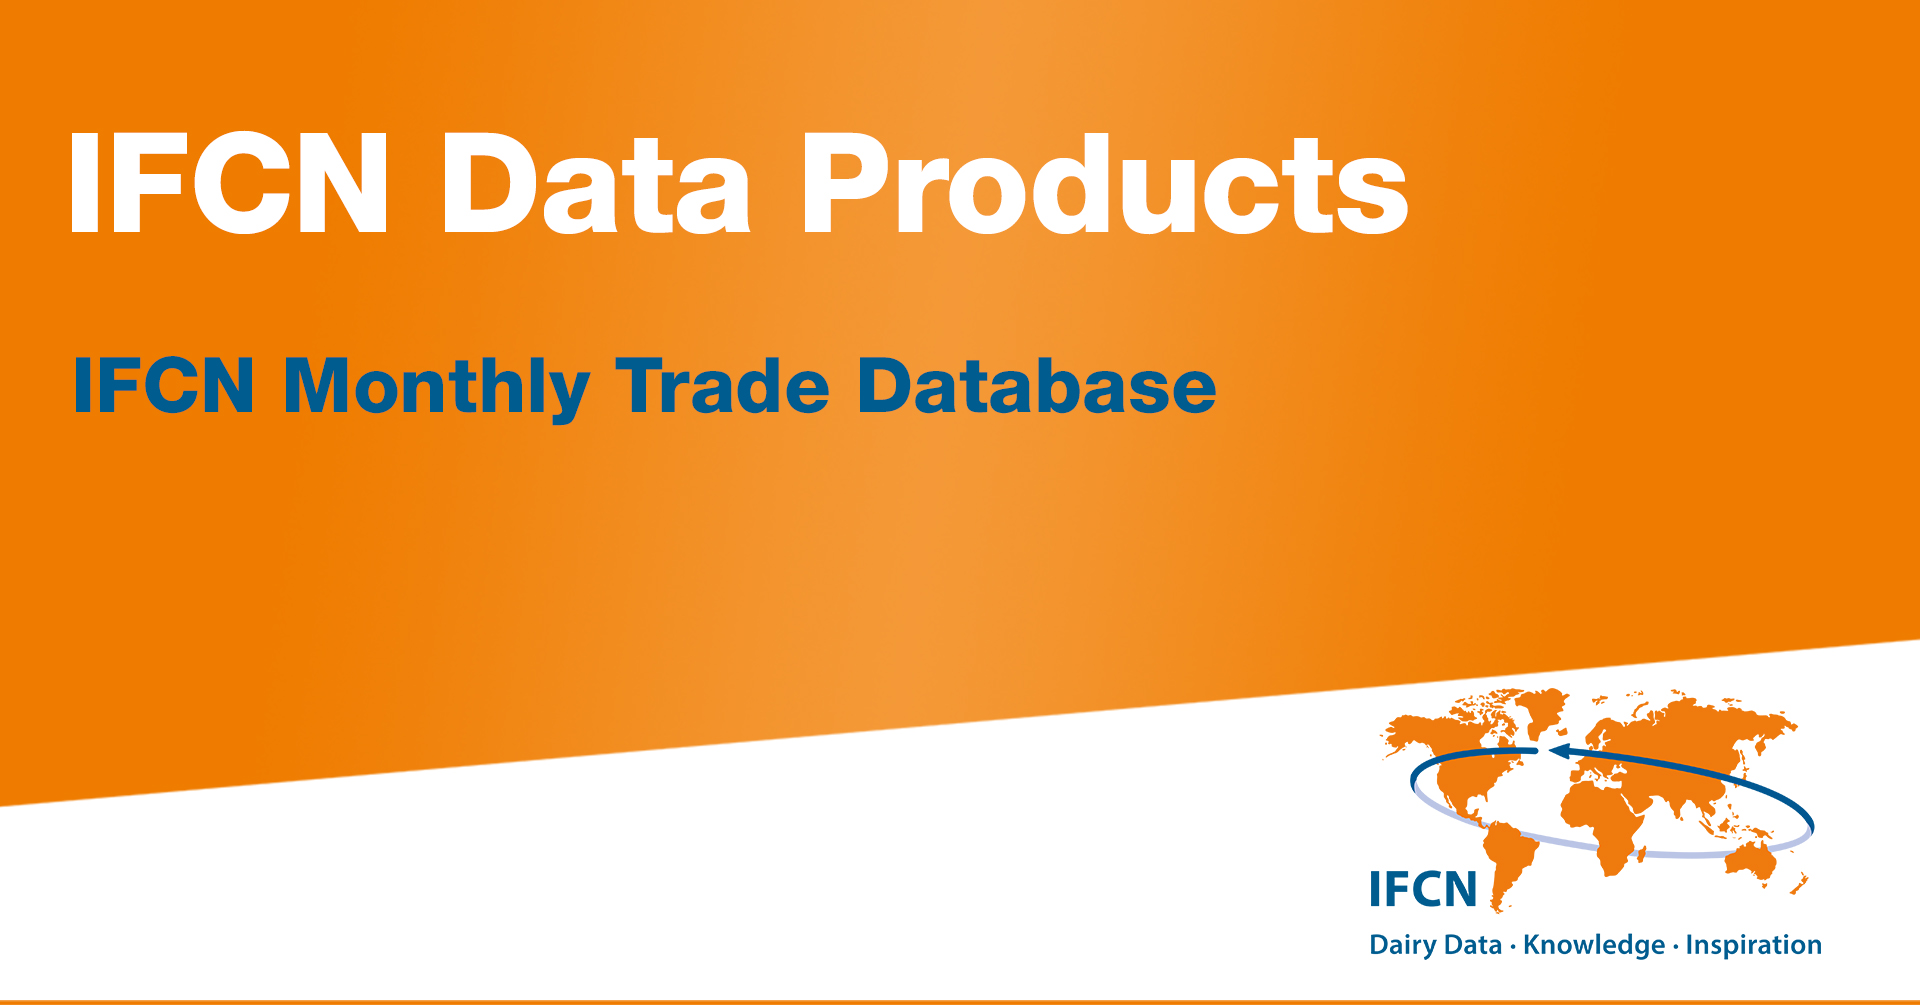 IFCN Monthly Trade Database